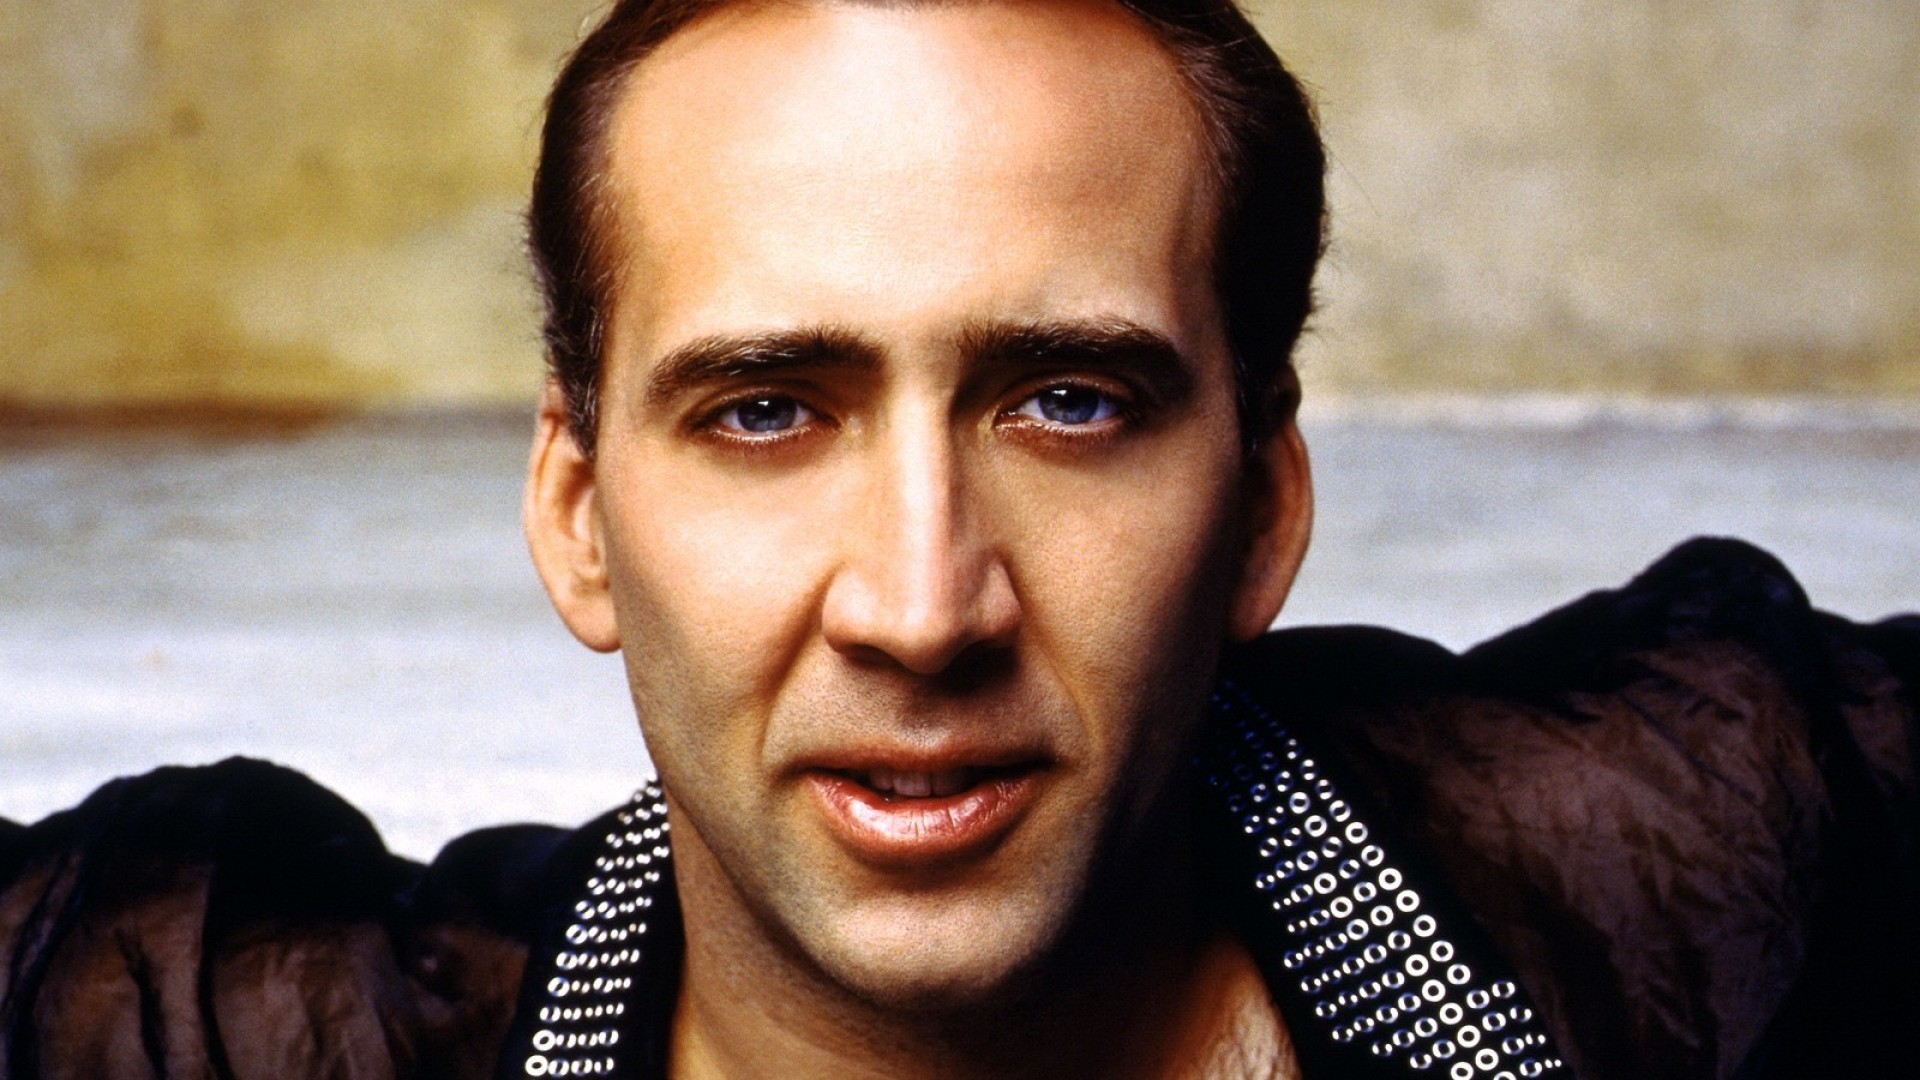 Nicolas Cage Wallpapers Pictures Images 1920x1080